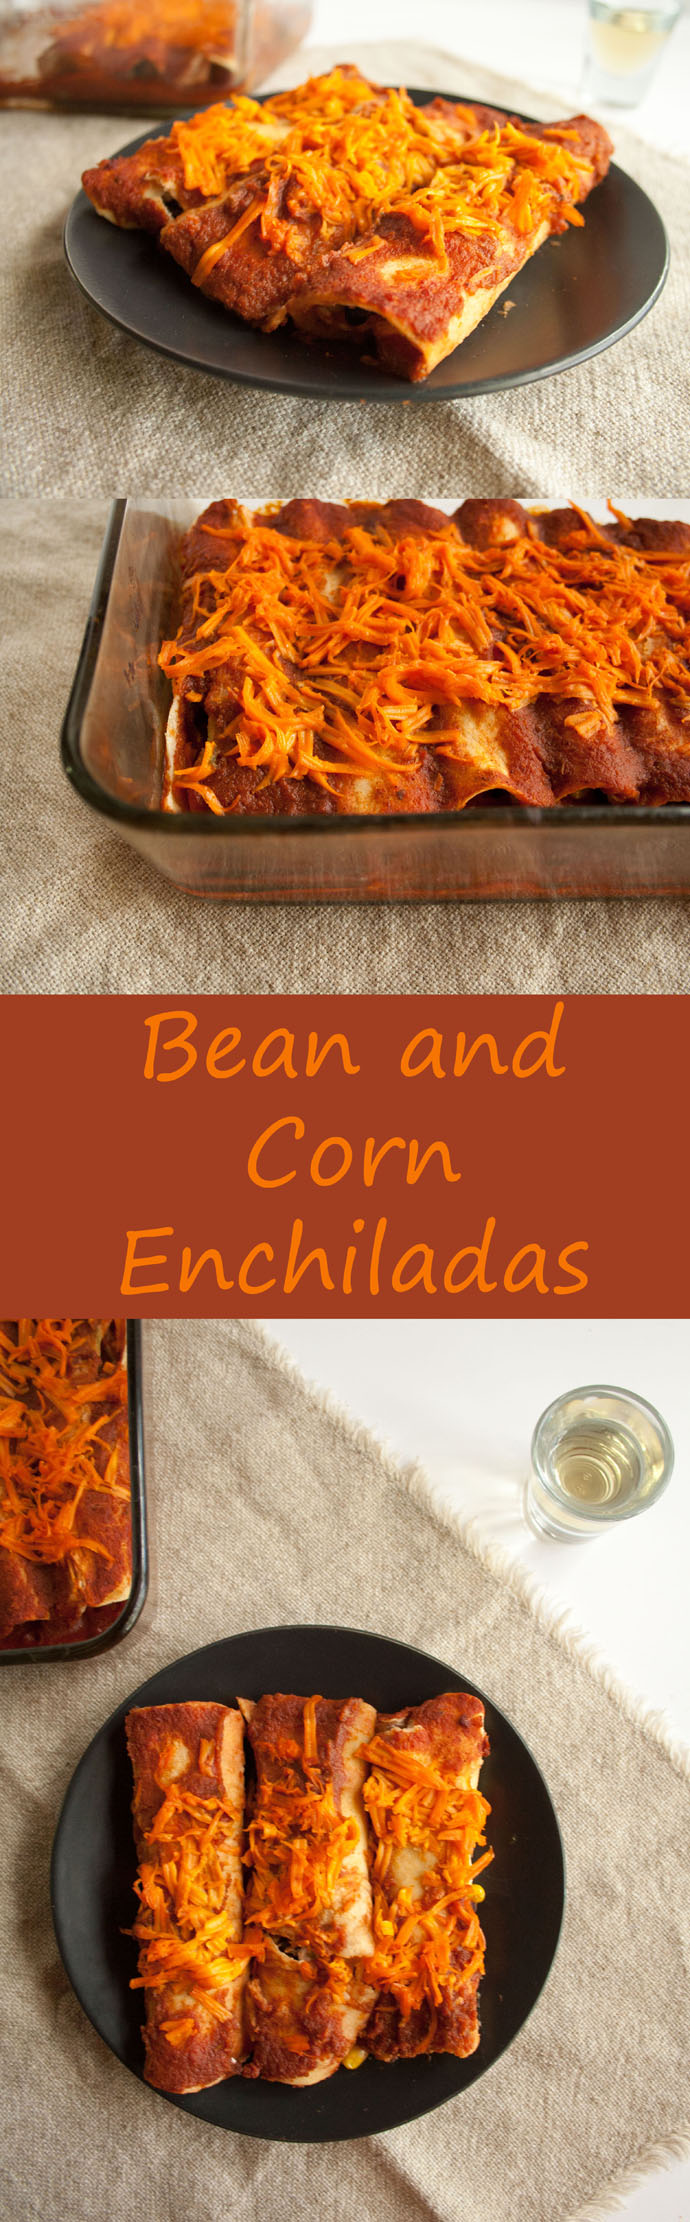 Bean and Corn Enchiladas collage photo with text.